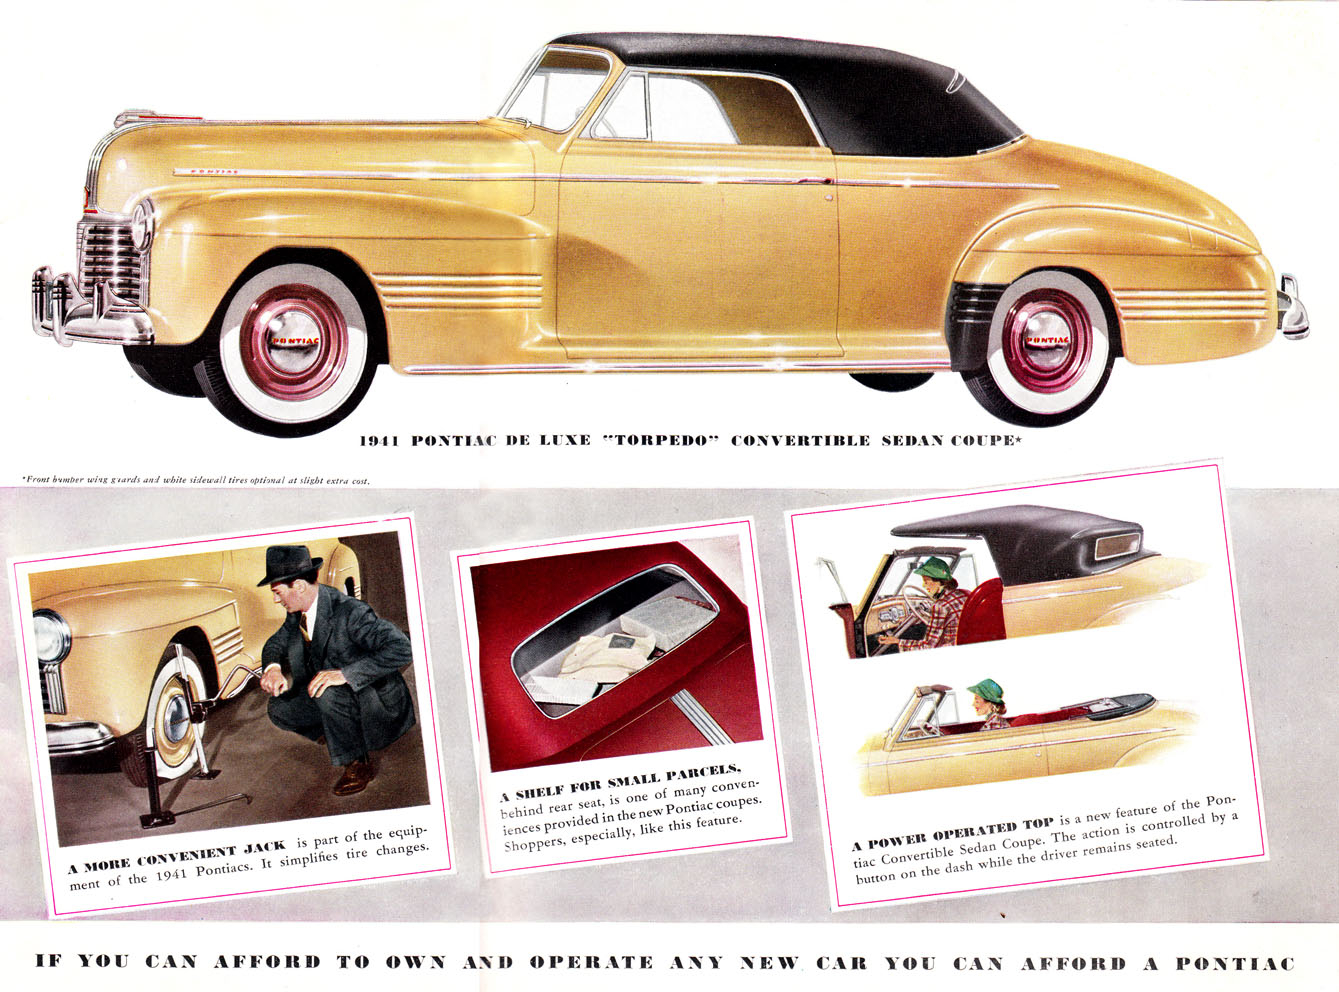 I Spotted An Insert Obscure Car Name Here Classic Today 1941 Pontiac Silver Streak Coupe For A Power Convertible Was Available And Scotch Mist Returned